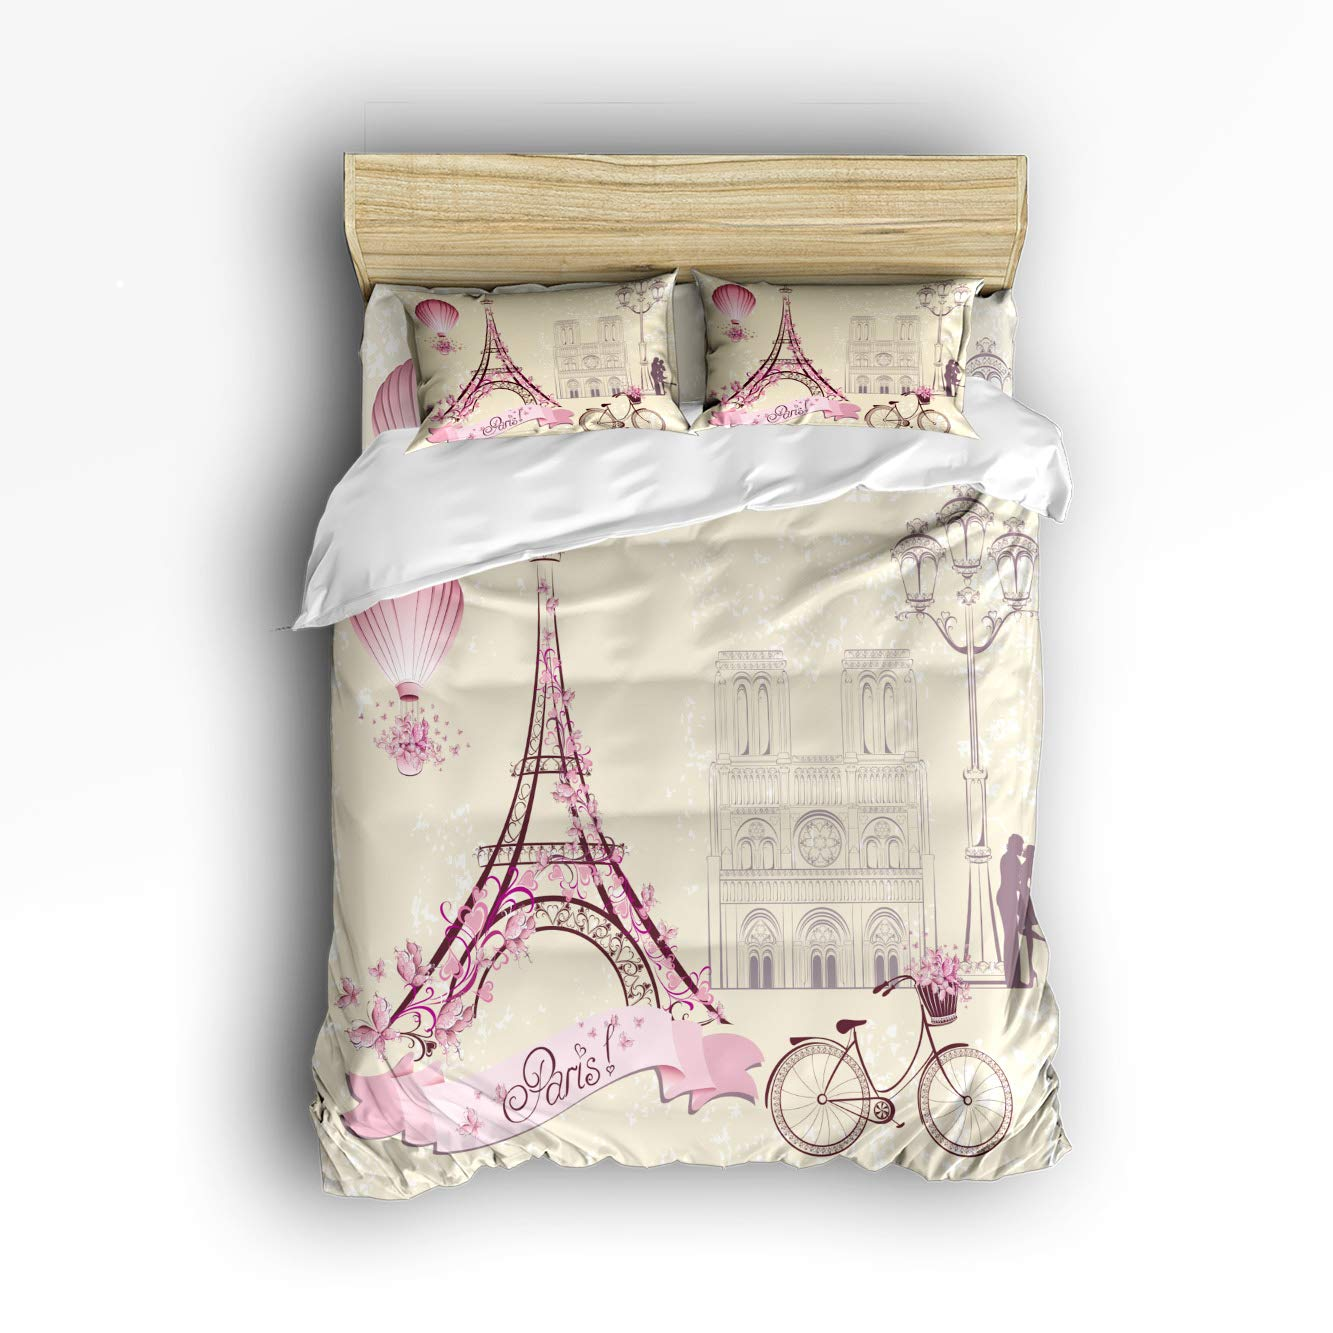 Prime Leader 4 Pcs Bedding Set Paris Eiffel Tower Greeting Card Duvet Cover Set Ultra Soft and Easy Care Sheet Quilt Sets with Decorative Pillow Covers for Children Kids Adults King Size